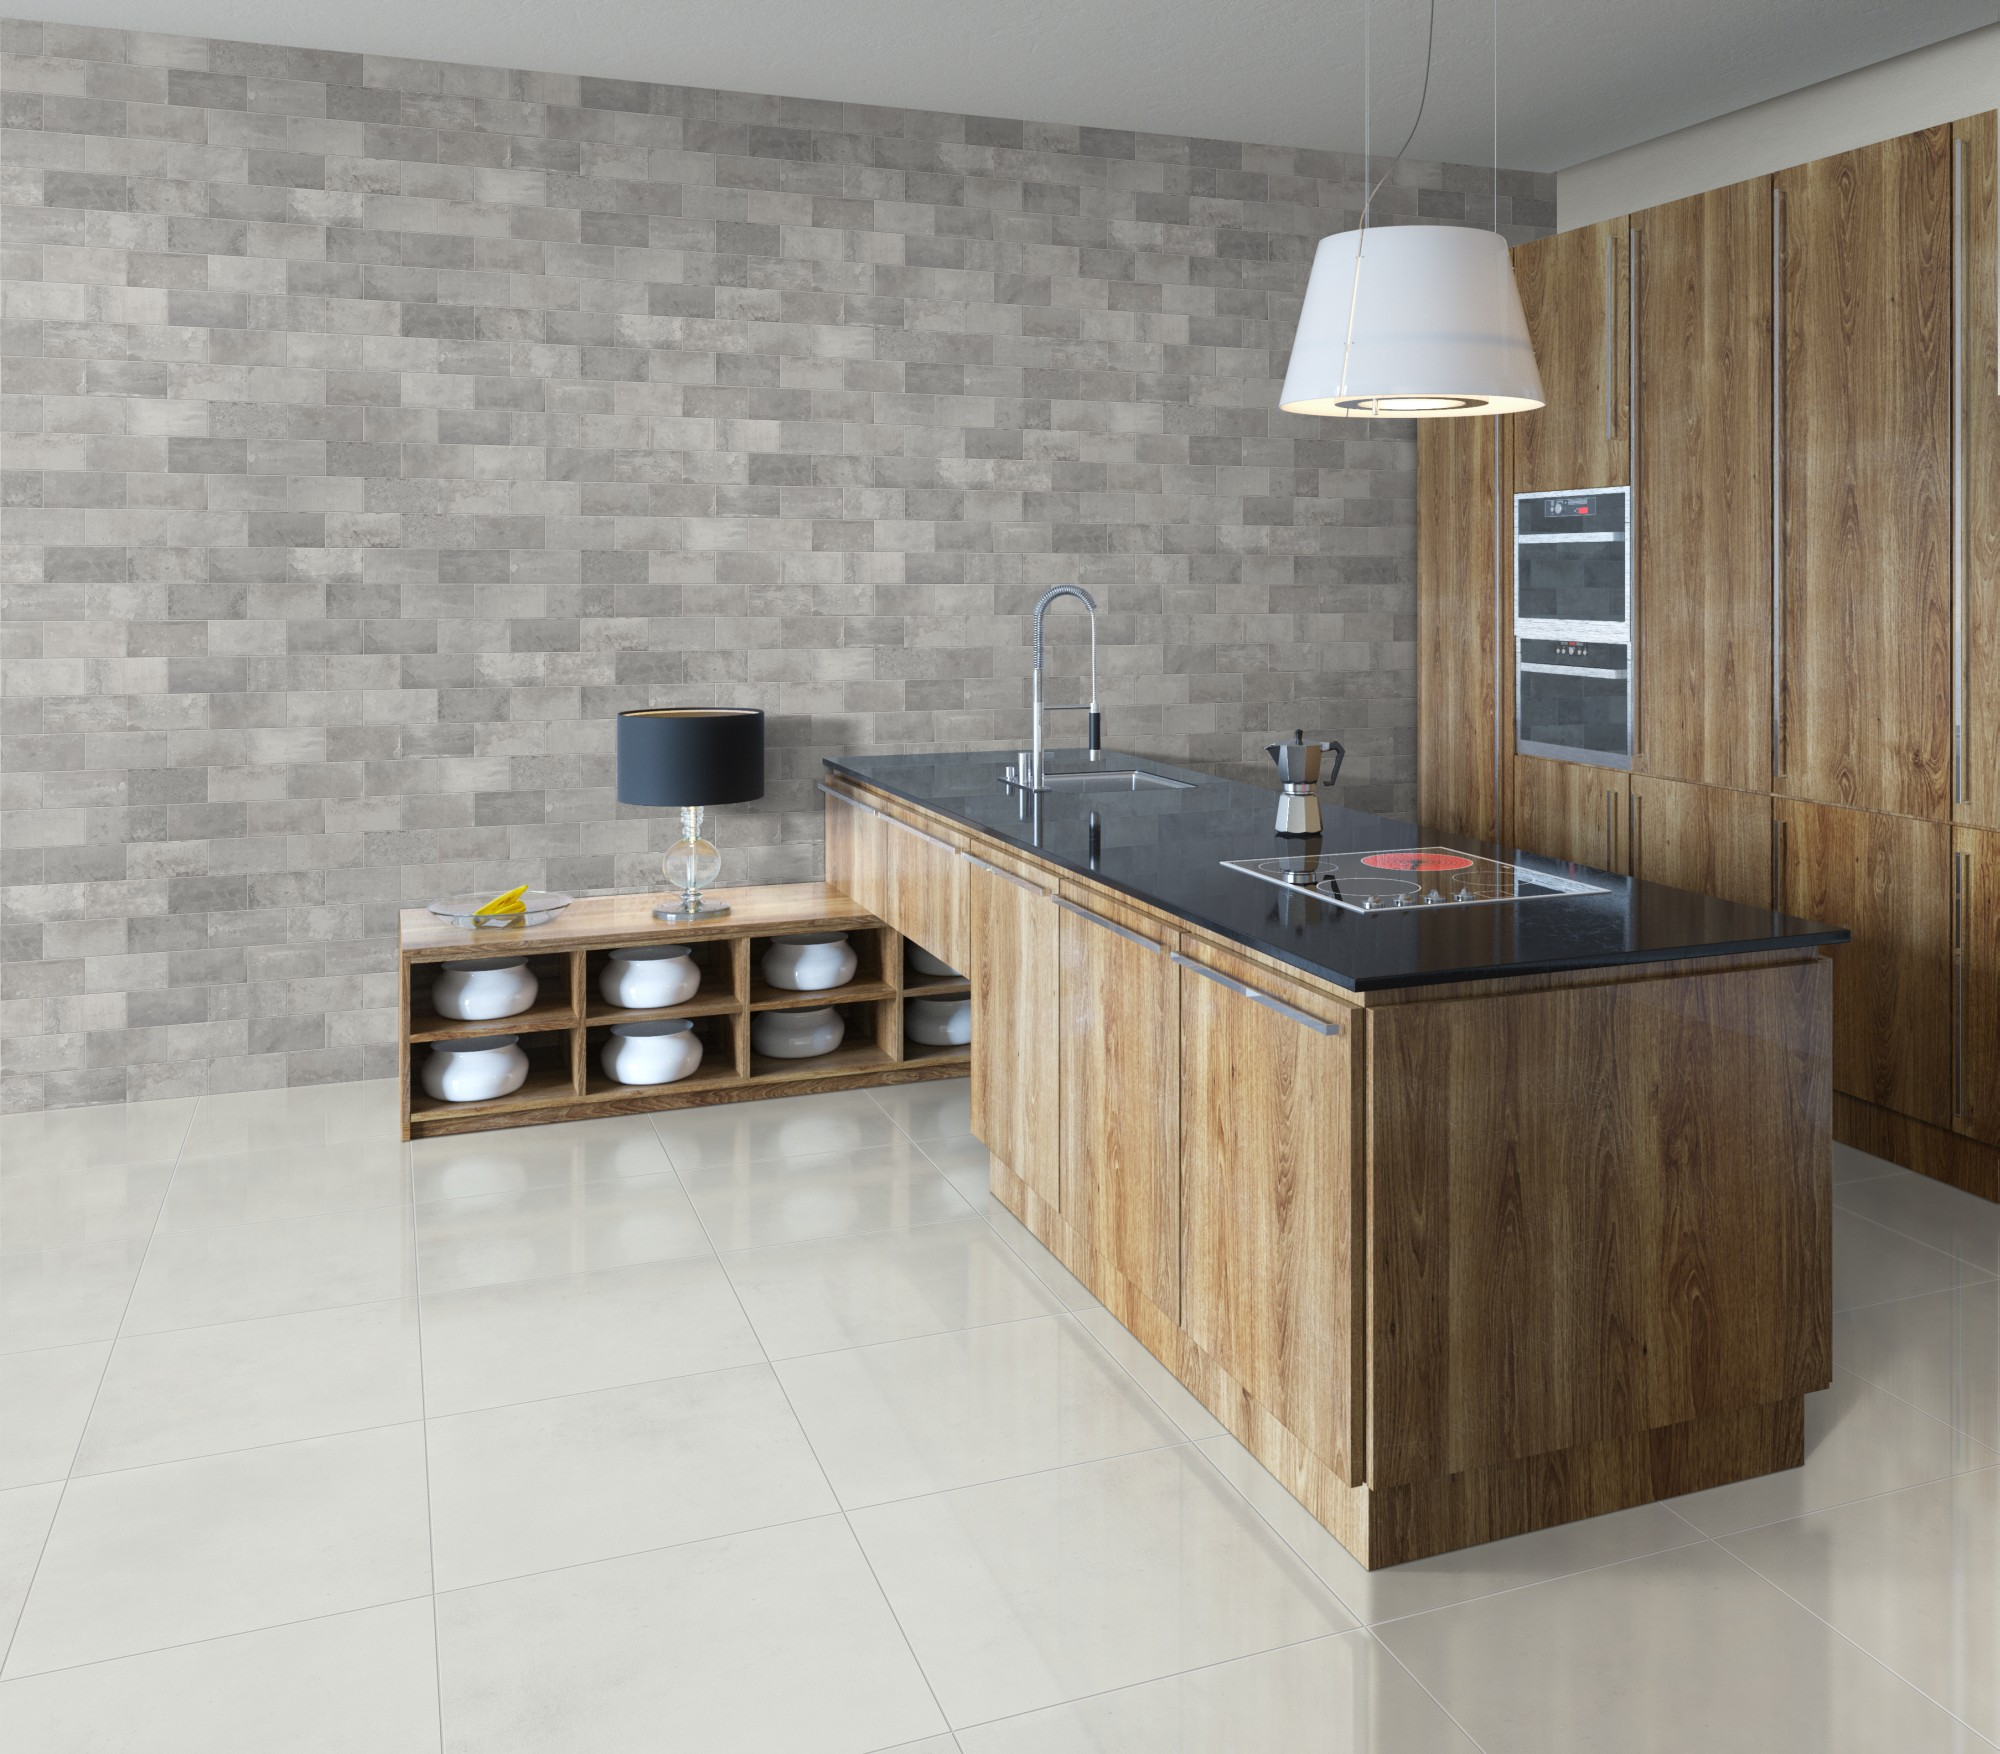 Kitchen Tiles Grey quattra -tinta series - kitchen tiles - international tiles